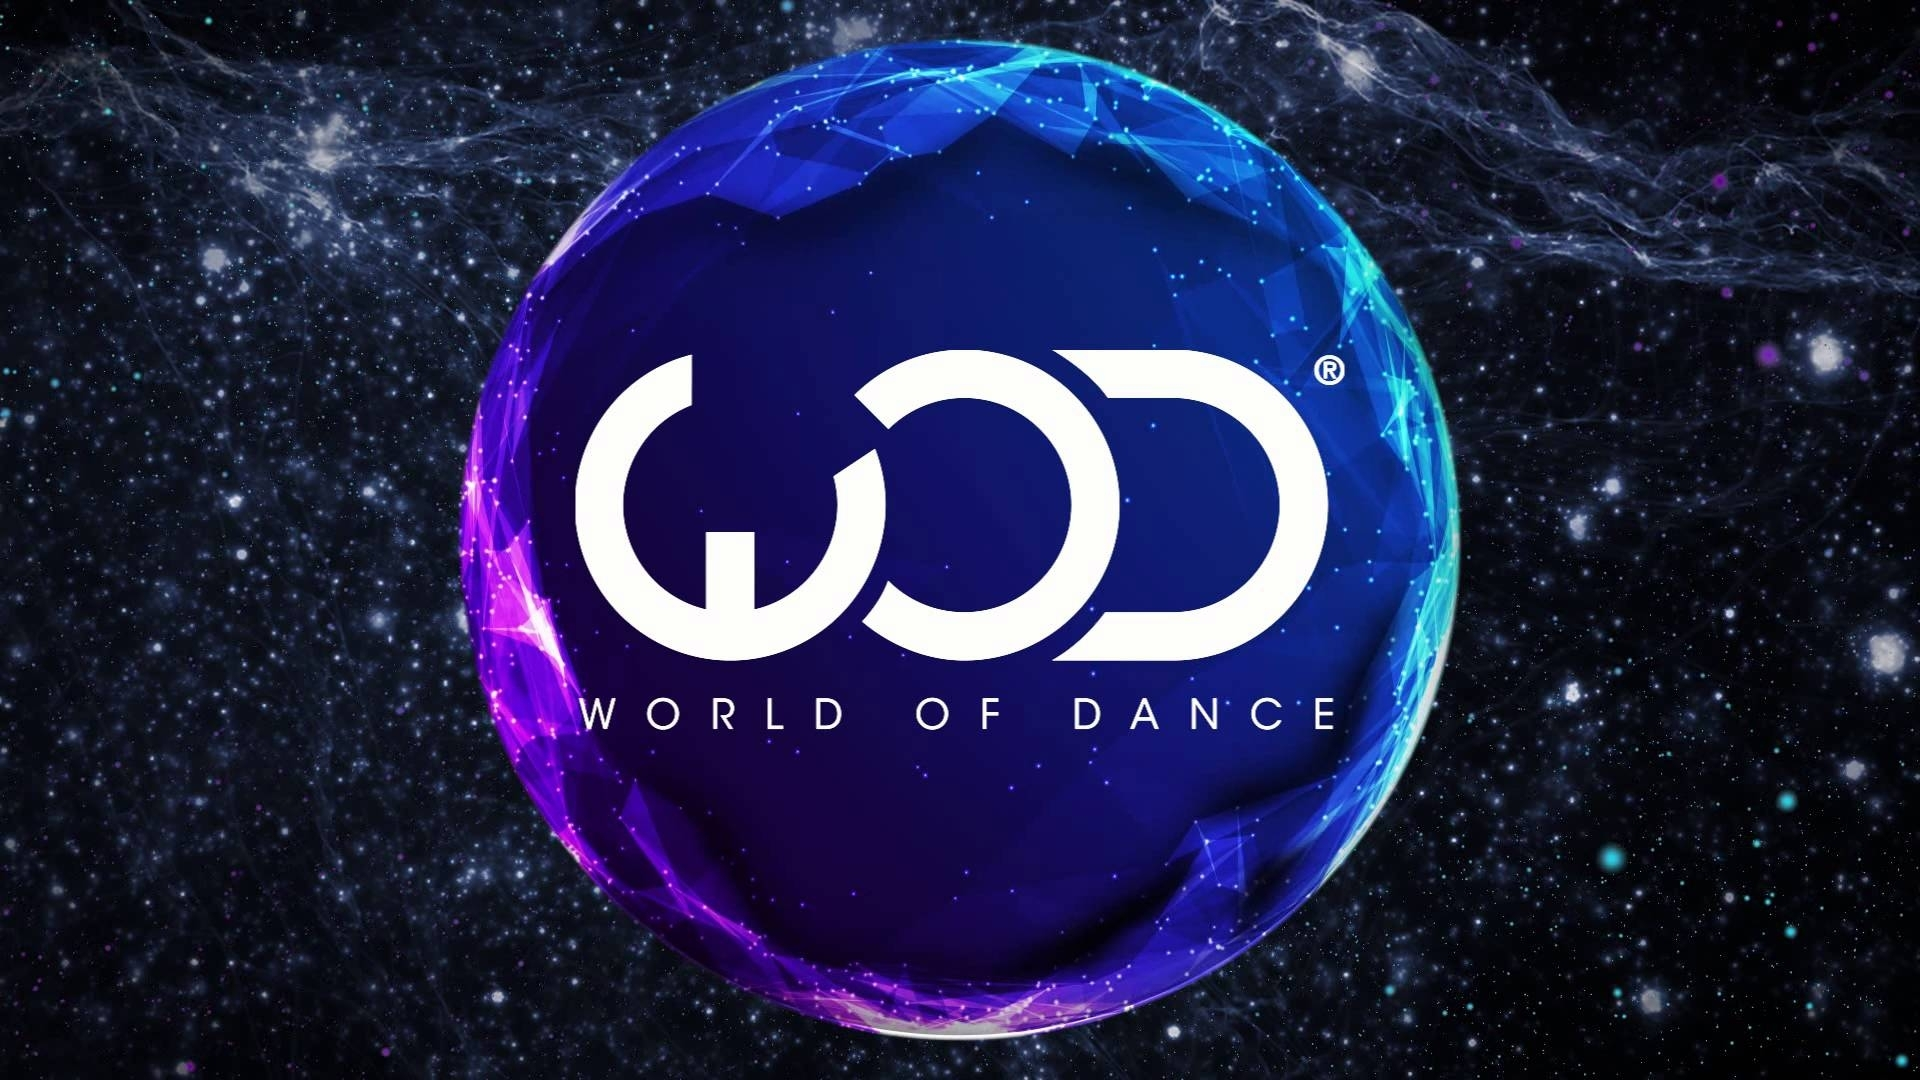 world of dance wallpapers - wallpaper cave